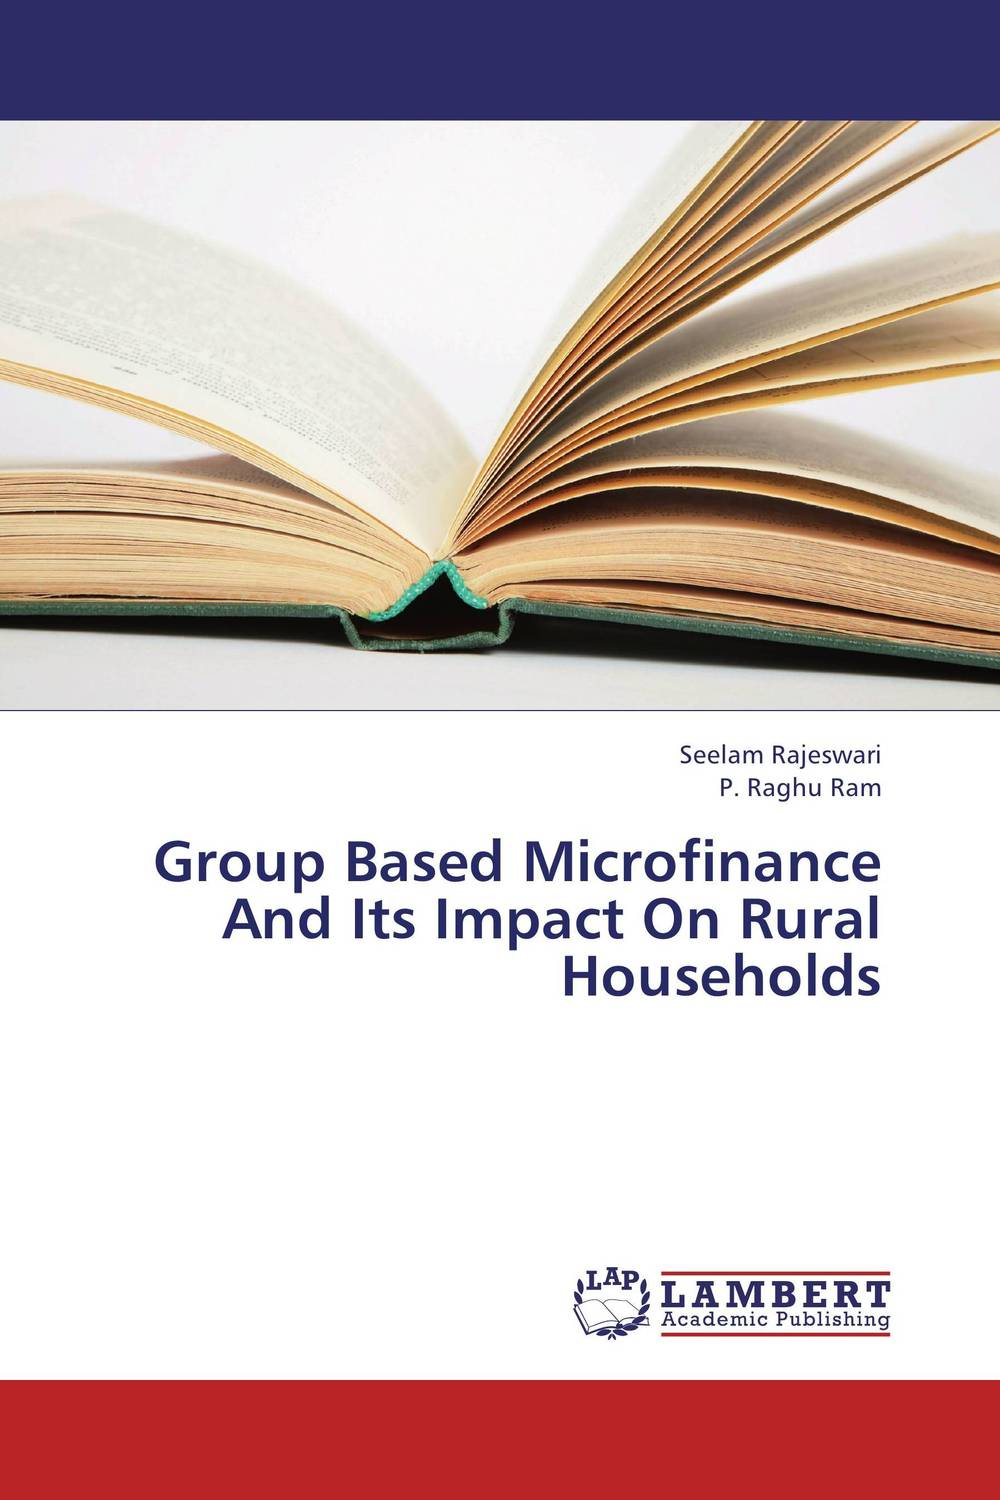 Group Based Microfinance And Its Impact On Rural Households бра st luce caset sl541 101 01